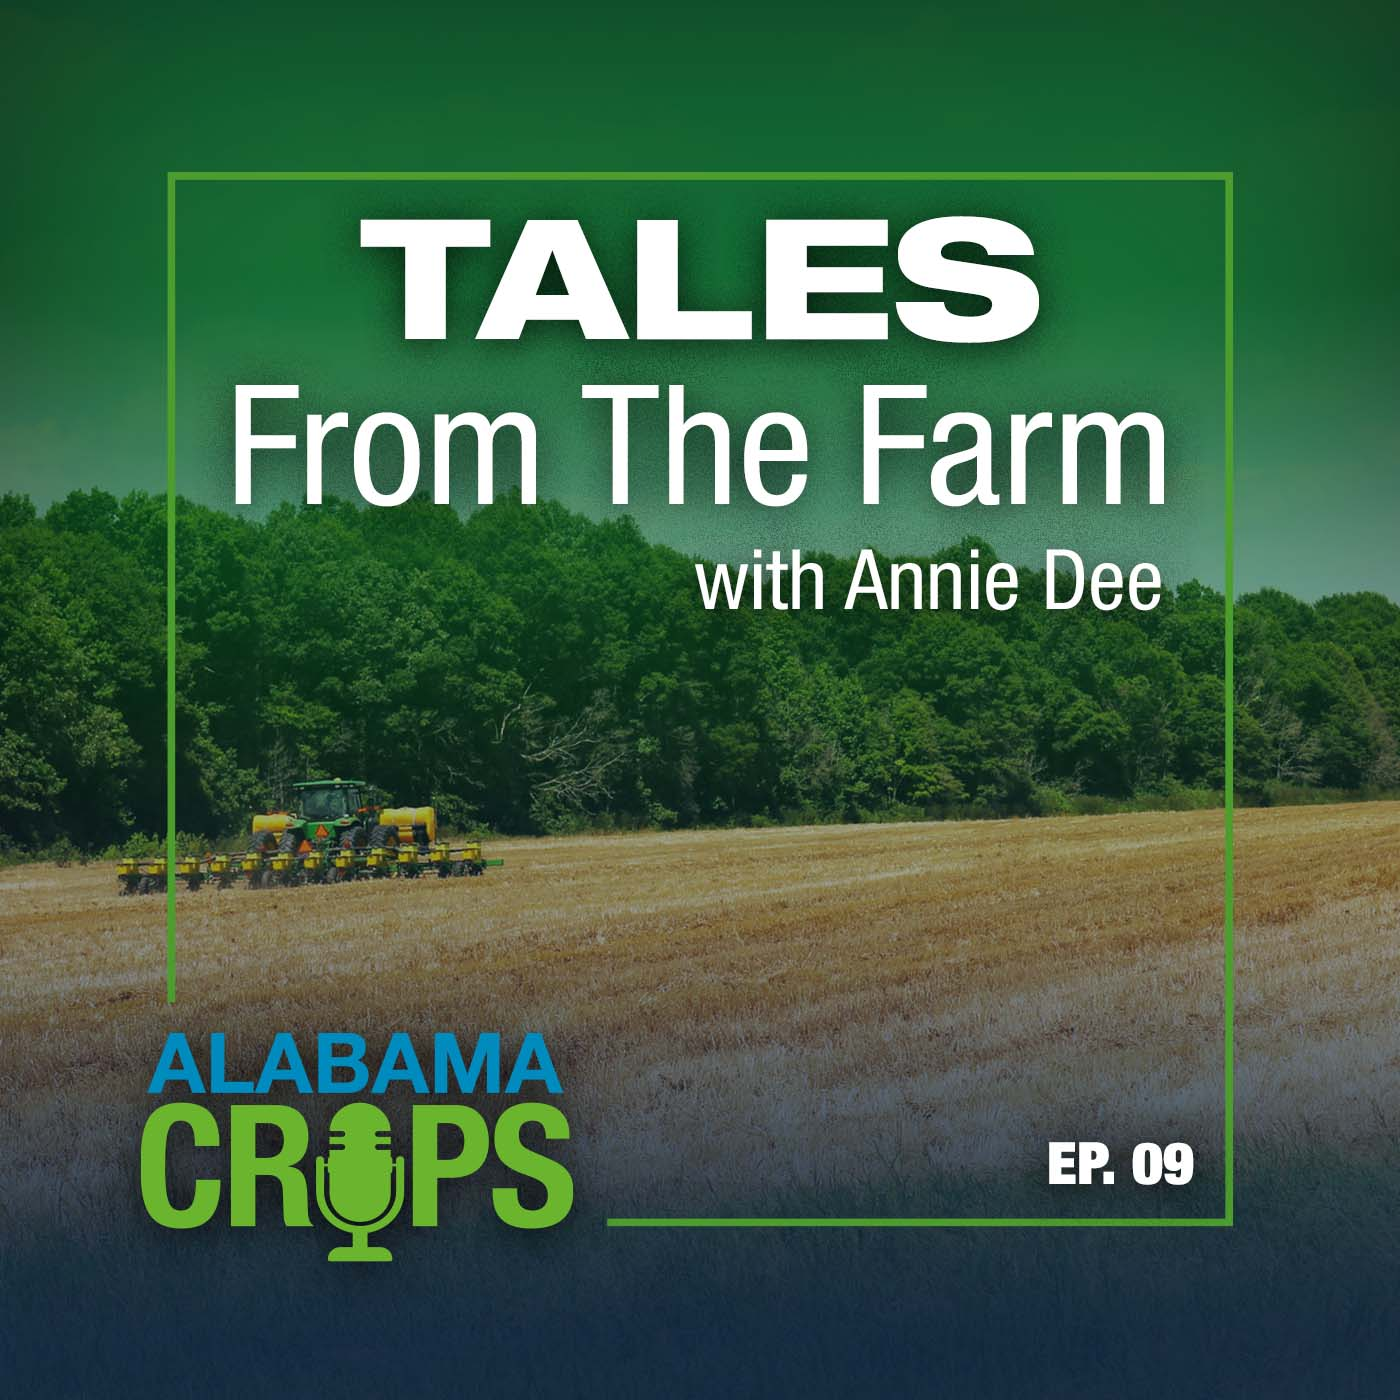 Episode 9 - Tales from the farm with Annie Dee